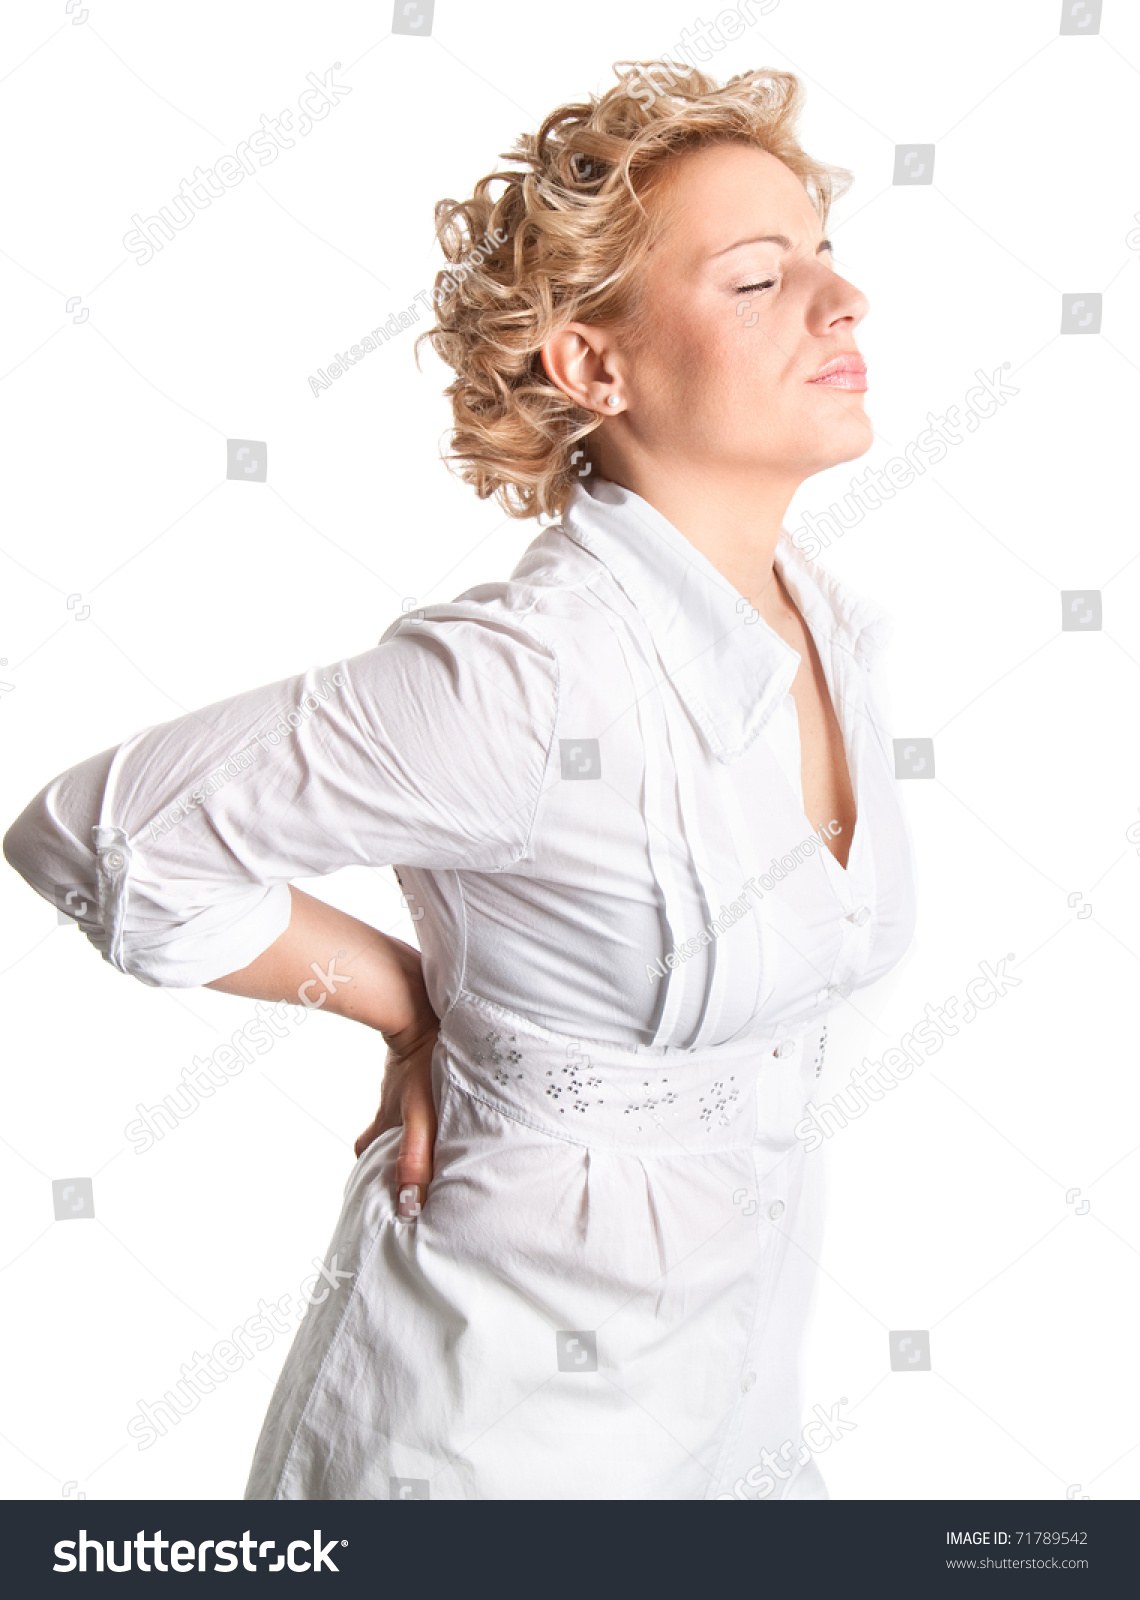 Hurting Back Pain. Young Woman Holds Her Back In Pain. Stock Photo ...